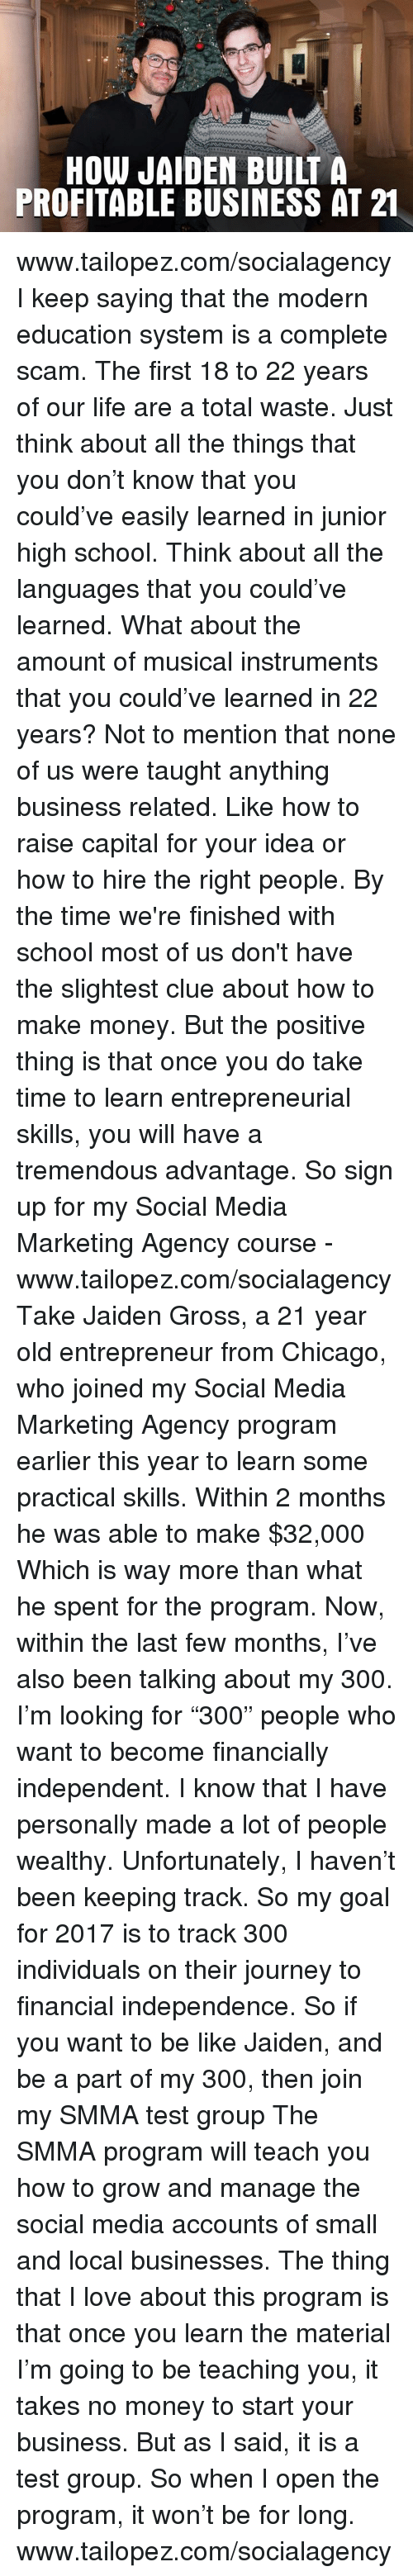 """Be Like, Chicago, and Journey: HOW JADEN BUILT A  PROFITABLE BUSINESS AT 21  AA  TS  HS  UE  BN  NS  EU  DB  AE  JL  WA  O IT  HF www.tailopez.com/socialagency   I keep saying that the modern education system is a complete scam.  The first 18 to 22 years of our life are a total waste.  Just think about all the things that you don't know that you could've easily learned in junior high school.  Think about all the languages that you could've learned.  What about the amount of musical instruments that you could've learned in 22 years?  Not to mention that none of us were taught anything business related. Like how to raise capital for your idea or how to hire the right people.   By the time we're finished with school most of us don't have the slightest clue about how to make money.  But the positive thing is that once you do take time to learn entrepreneurial skills, you will have a tremendous advantage.   So sign up for my Social Media Marketing Agency course - www.tailopez.com/socialagency  Take Jaiden Gross, a 21 year old entrepreneur from Chicago, who joined my Social Media Marketing Agency program earlier this year to learn some practical skills.  Within 2 months he was able to make $32,000  Which is way more than what he spent for the program.   Now, within the last few months, I've also been talking about my 300.  I'm looking for """"300"""" people who want to become financially independent.  I know that I have personally made a lot of people wealthy. Unfortunately, I haven't been keeping track.   So my goal for 2017 is to track 300 individuals on their journey to financial independence.  So if you want to be like Jaiden, and be a part of my 300, then join my SMMA test group  The SMMA program will teach you how to grow and manage the social media accounts of small and local businesses.   The thing that I love about this program is that once you learn the material I'm going to be teaching you, it takes no money to start your business.  But as I said, it is a test group."""